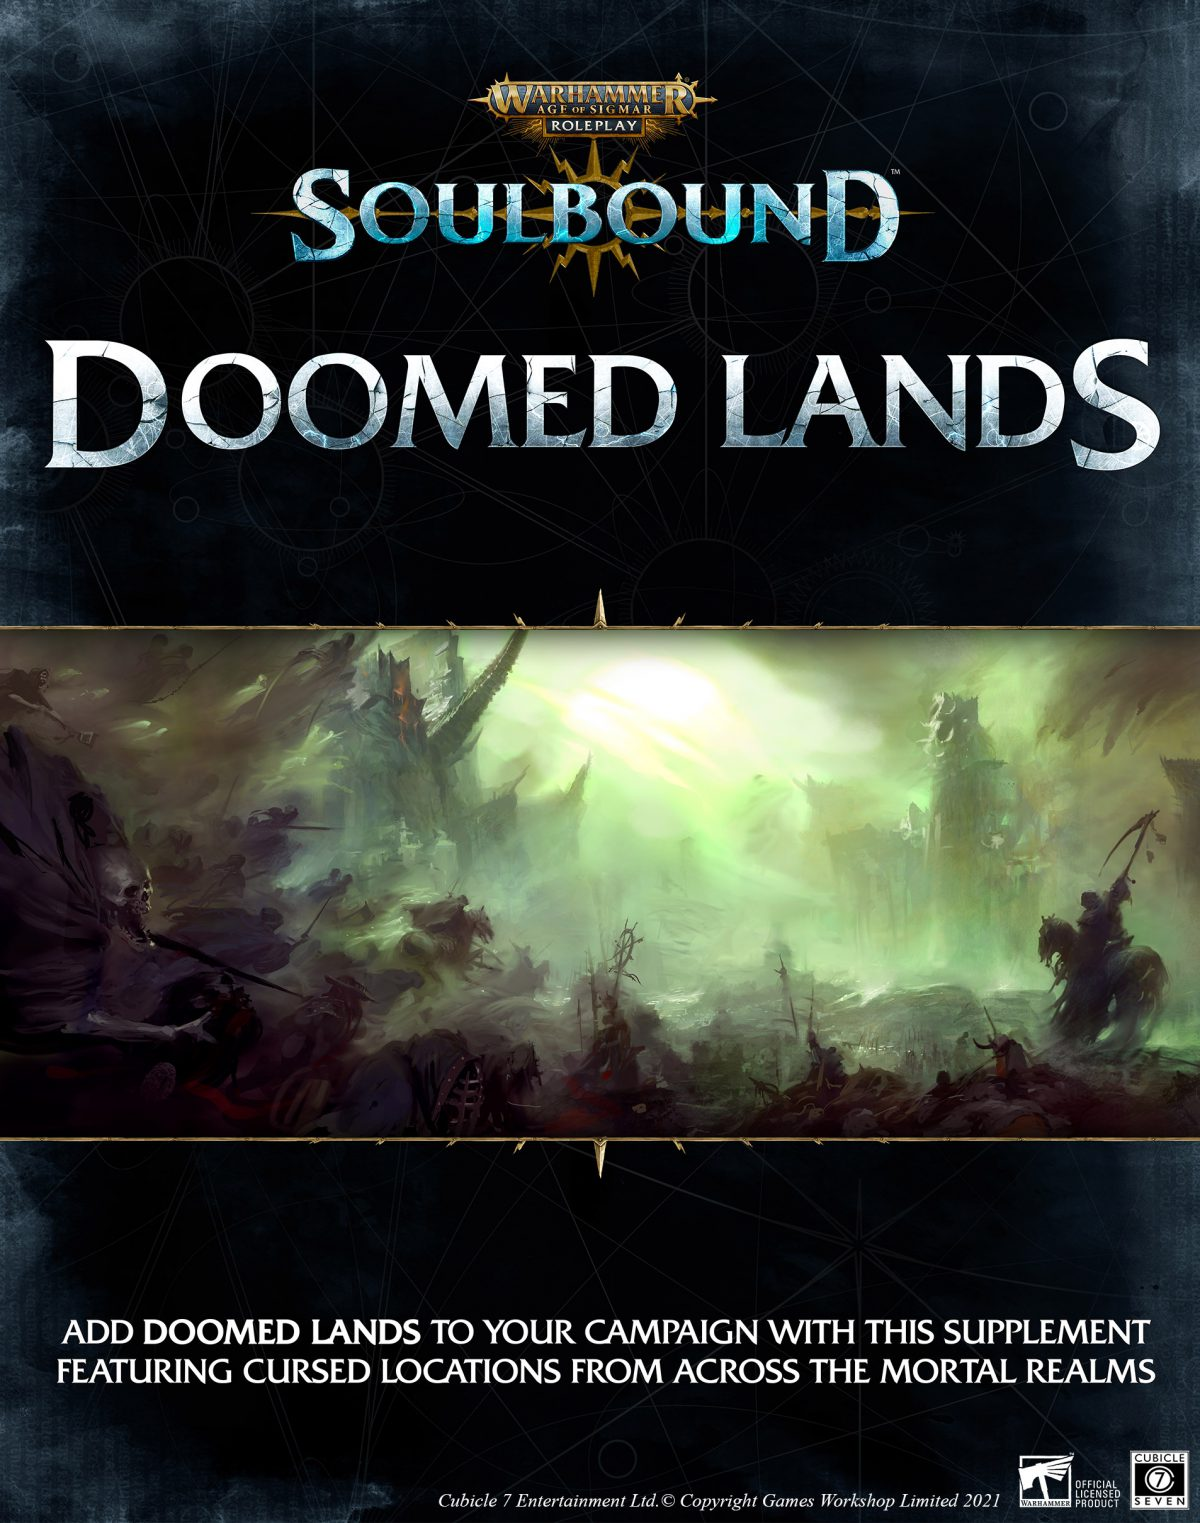 AoS: Soulbound, Doomed Lands Coming Soon!